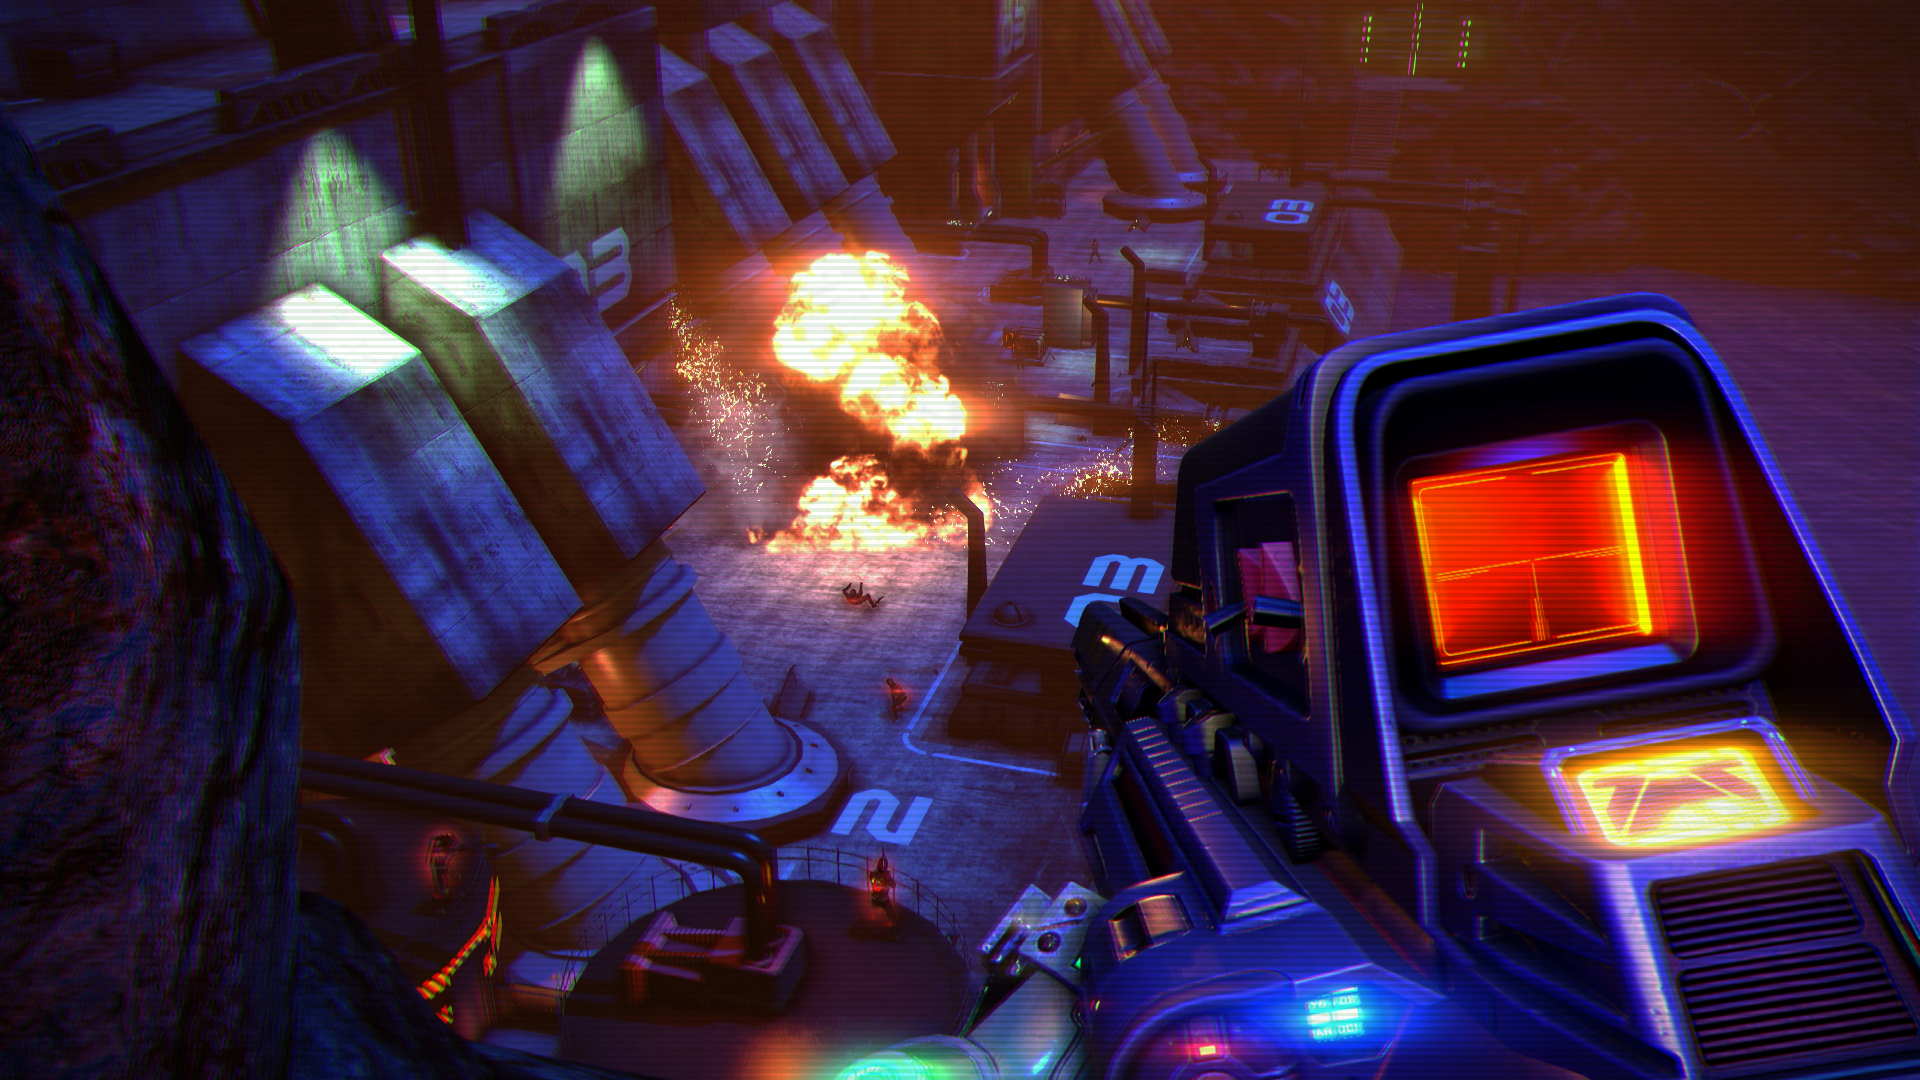 Far Cry 3 Blood Dragon Free On Pc Starting November 9